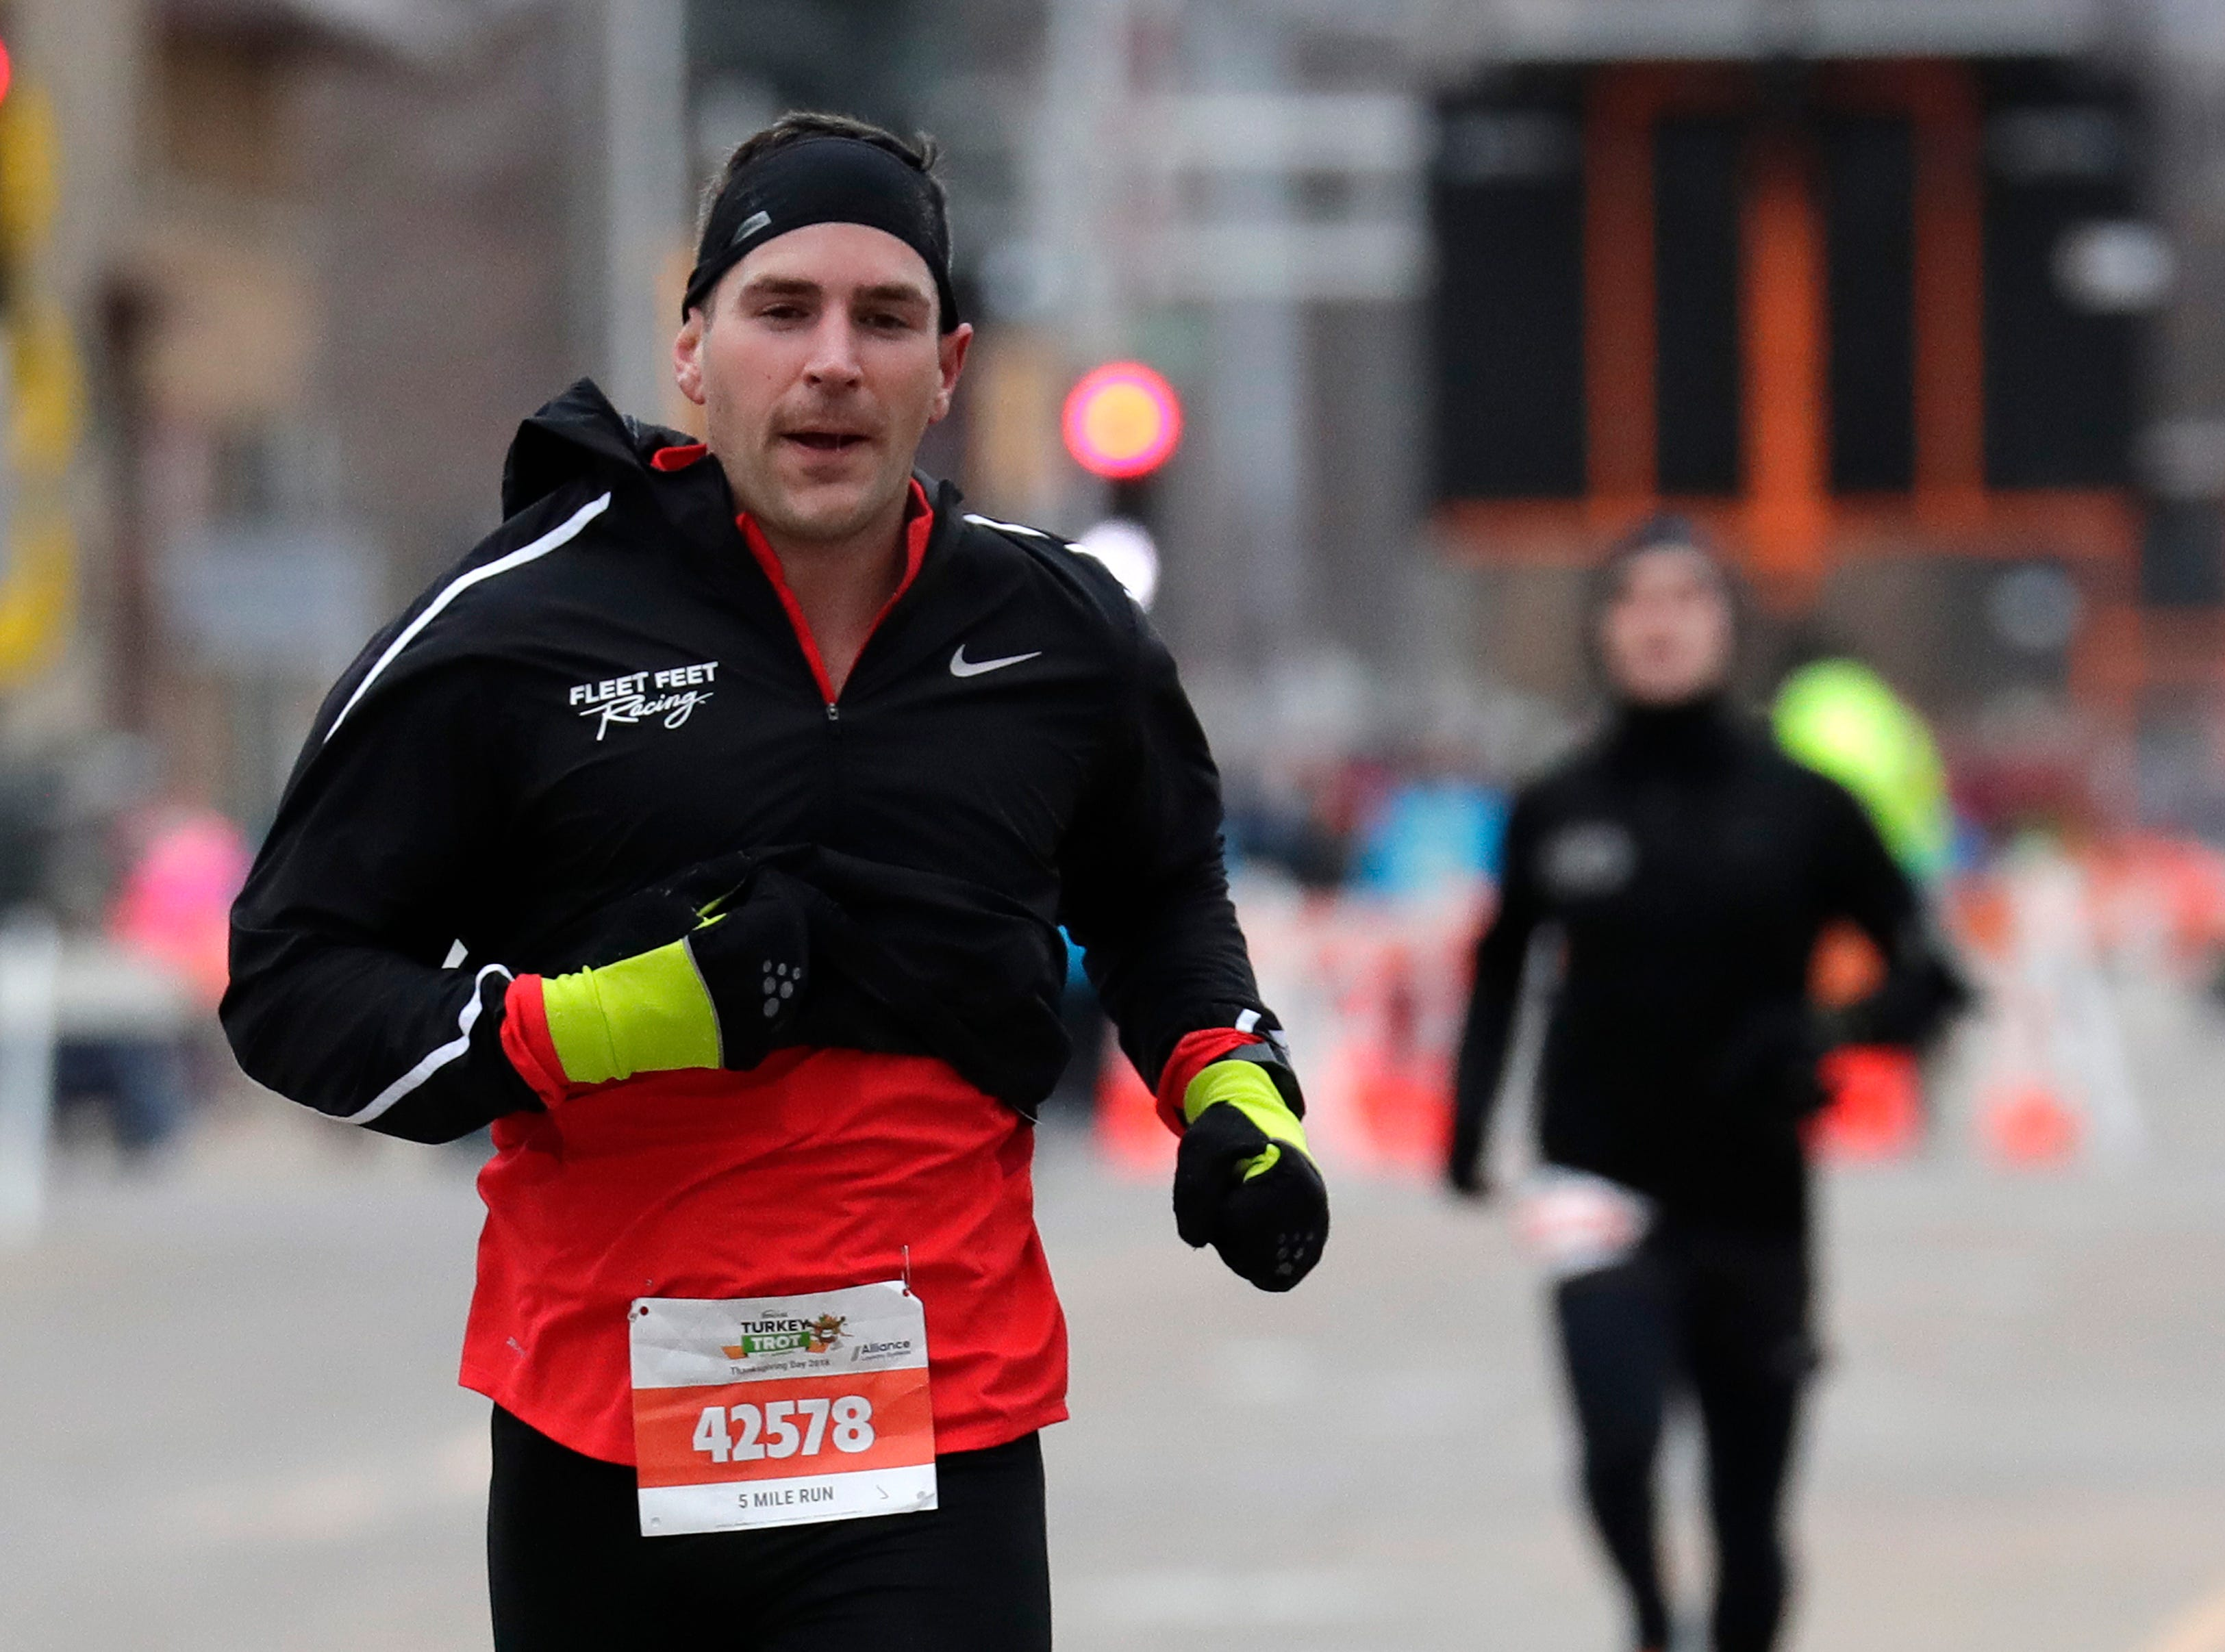 Eric Baum of Chicago participates in the 11th Annual Festival Foods Turkey Trot Thursday, November 22, 2018, in Appleton, Wis. 